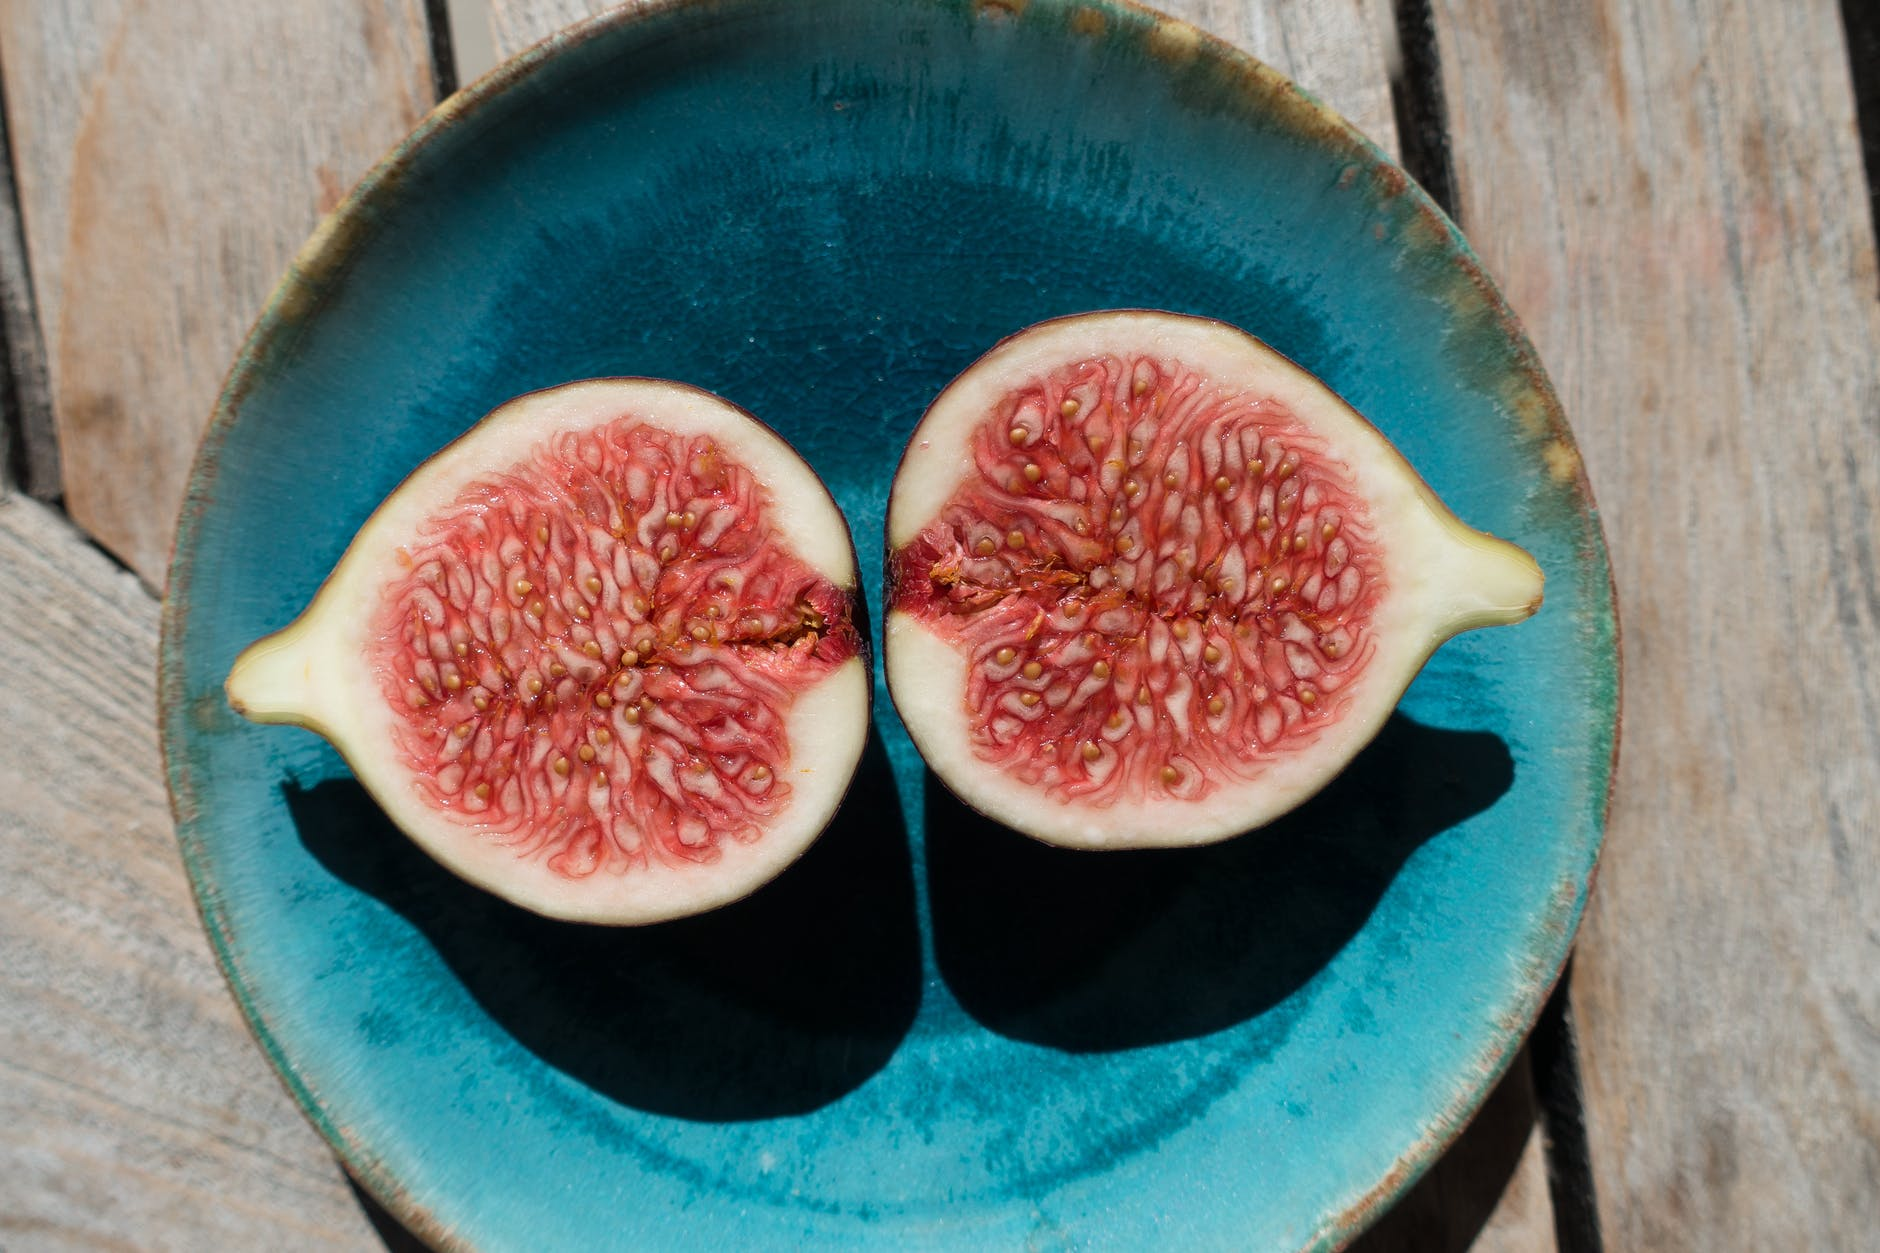 Stock photo of a ripe fig sliced in half, on a blue ceramic plate